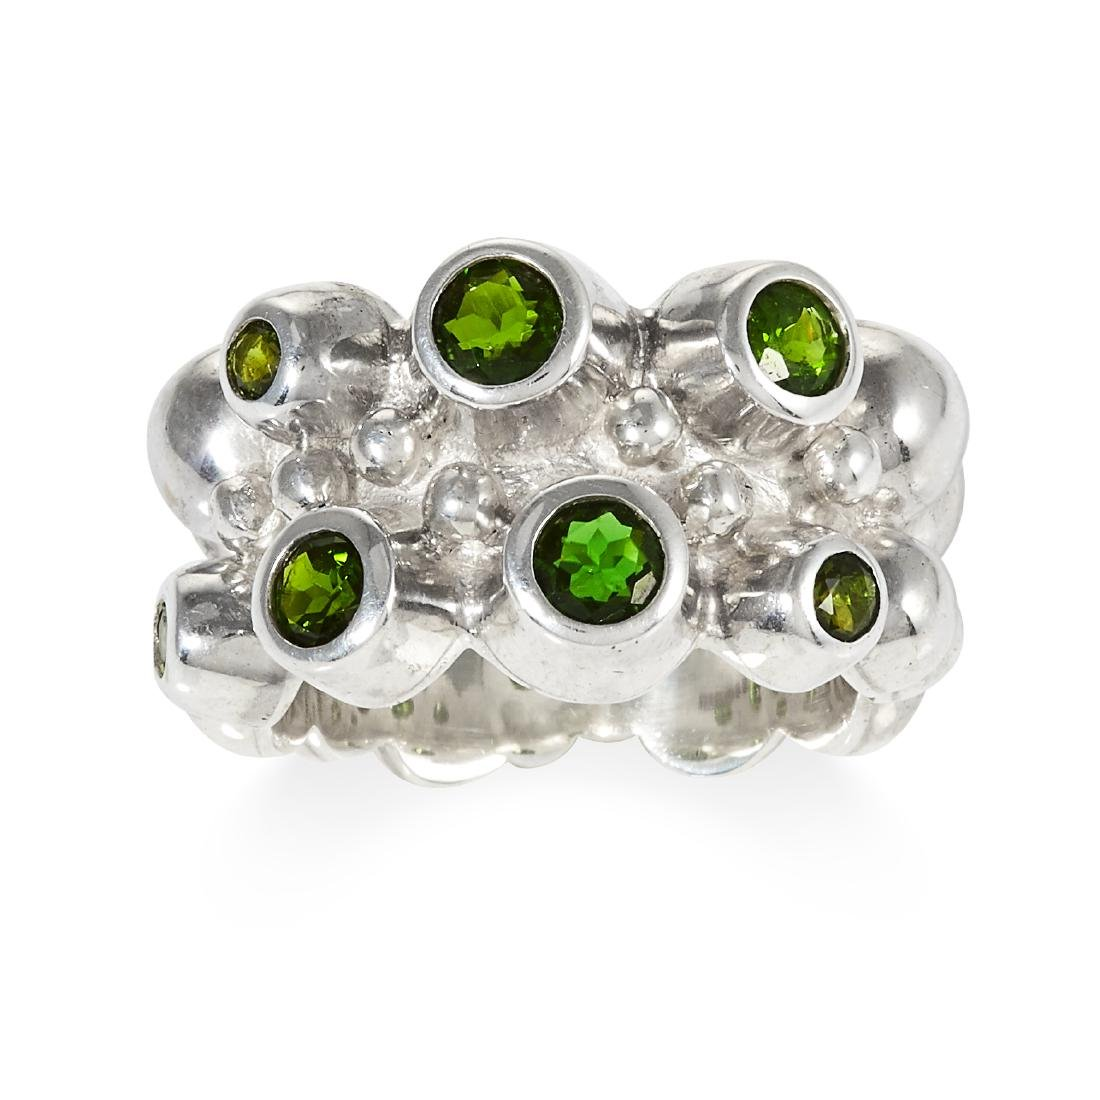 A DIOPSIDE RING in sterling silver, set with seven